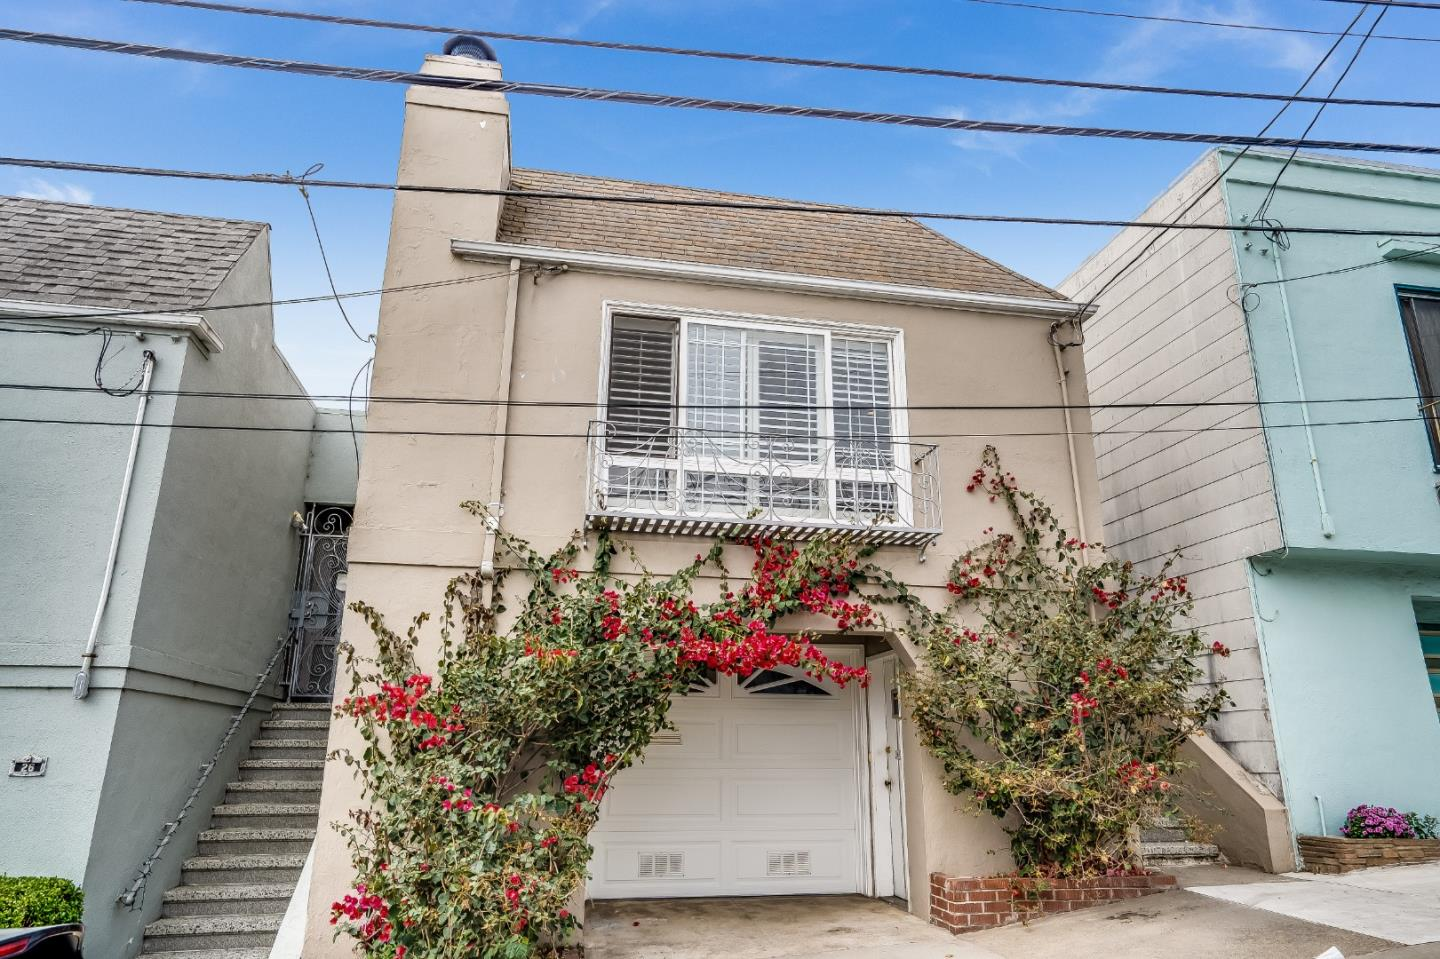 Incredibly charming Ingleside Heights home located on a very private culdesac.  The interior of the home has recently been painted and original hardwood flooring has been refinished. Large living room with cozy wood burning fireplace and lots of natural light from floor to ceiling windows. Dining area for entertaining. Fantastic remodeled kitchen with custom cabinetry including pantry, granite counters and tile backsplash, extra deep sink. The showstopper is the 6 burner, double oven, double broiler, vintage Wedgewood stove...functional and super chic. Upstairs has 2 large bedrooms with views of the rear yard and 1 full bathroom with stall shower and bathtub. Downstairs has additional finished space including a full bathroom and separate entrance.  Beautiful rear yard that is fenced and landscaped.  Attached oversized 1 car garage provides additional storage.  Incredible location with easy access to 280 and close proximity to public transportation, schools, shopping and entertainment.